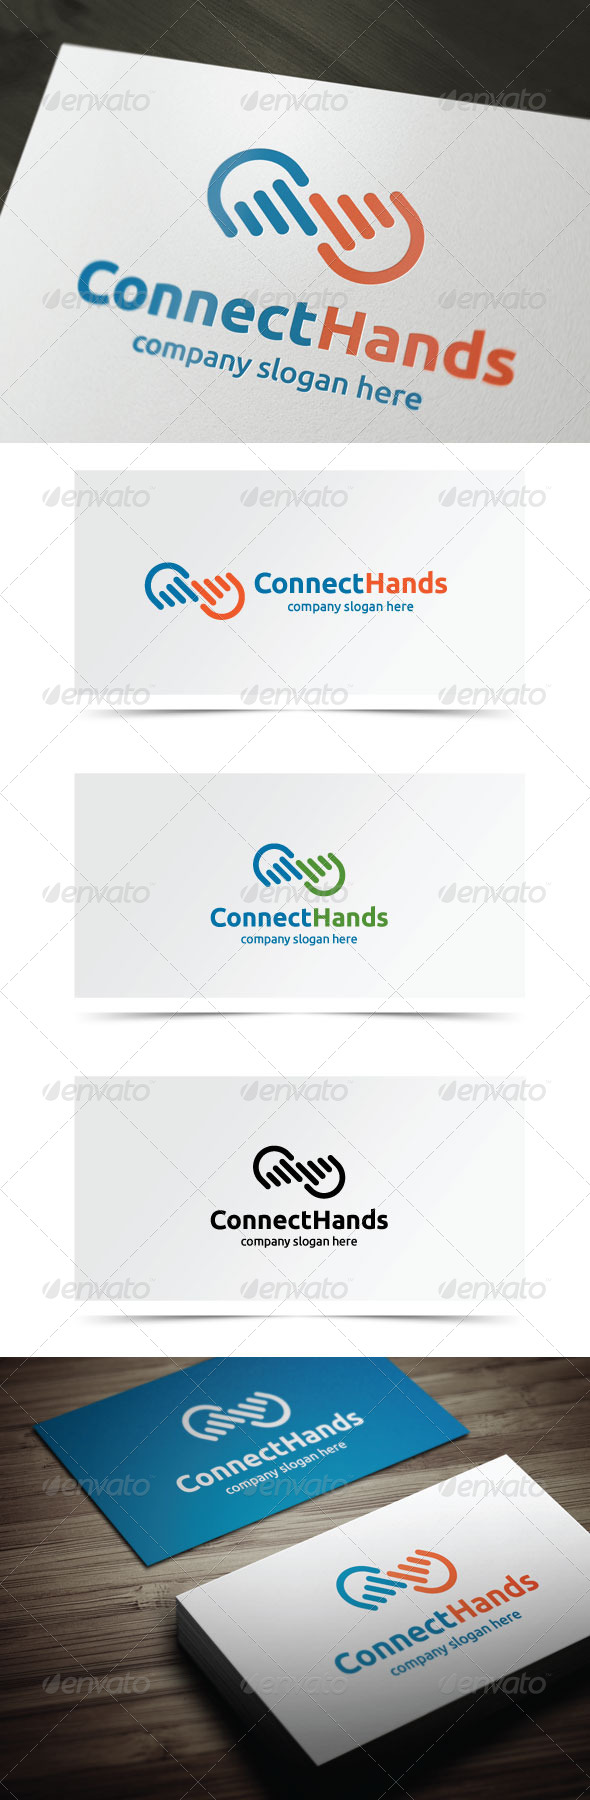 Connect Hands